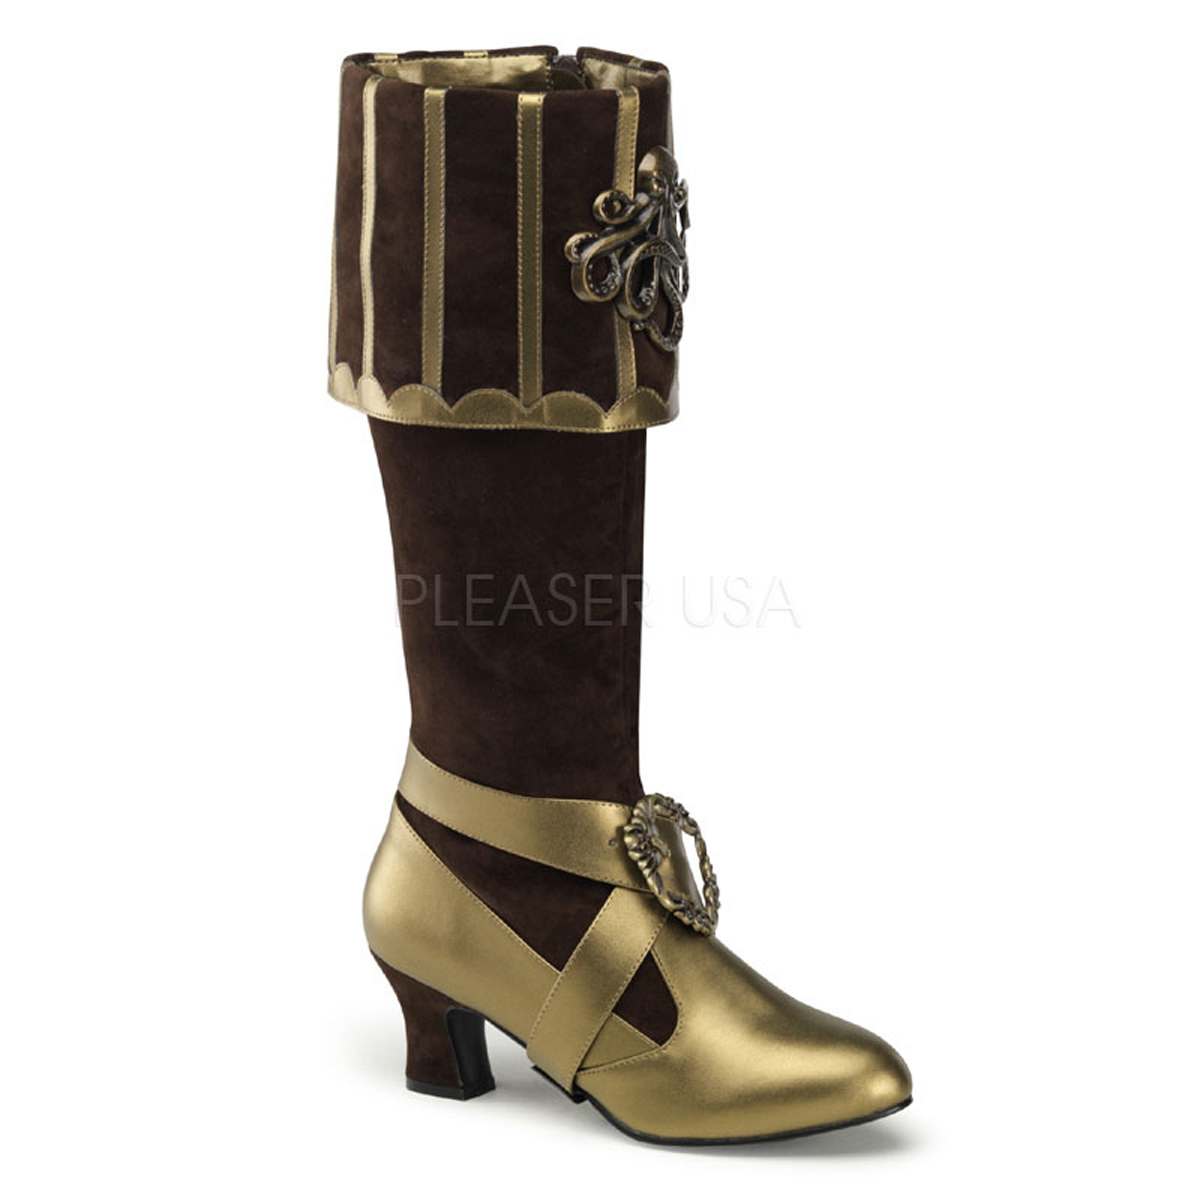 "FUNTASMA Cthulhu-299 Series 3 3/4"" Heel Costume Shoe - Brown Velvet-Bronze Pu"